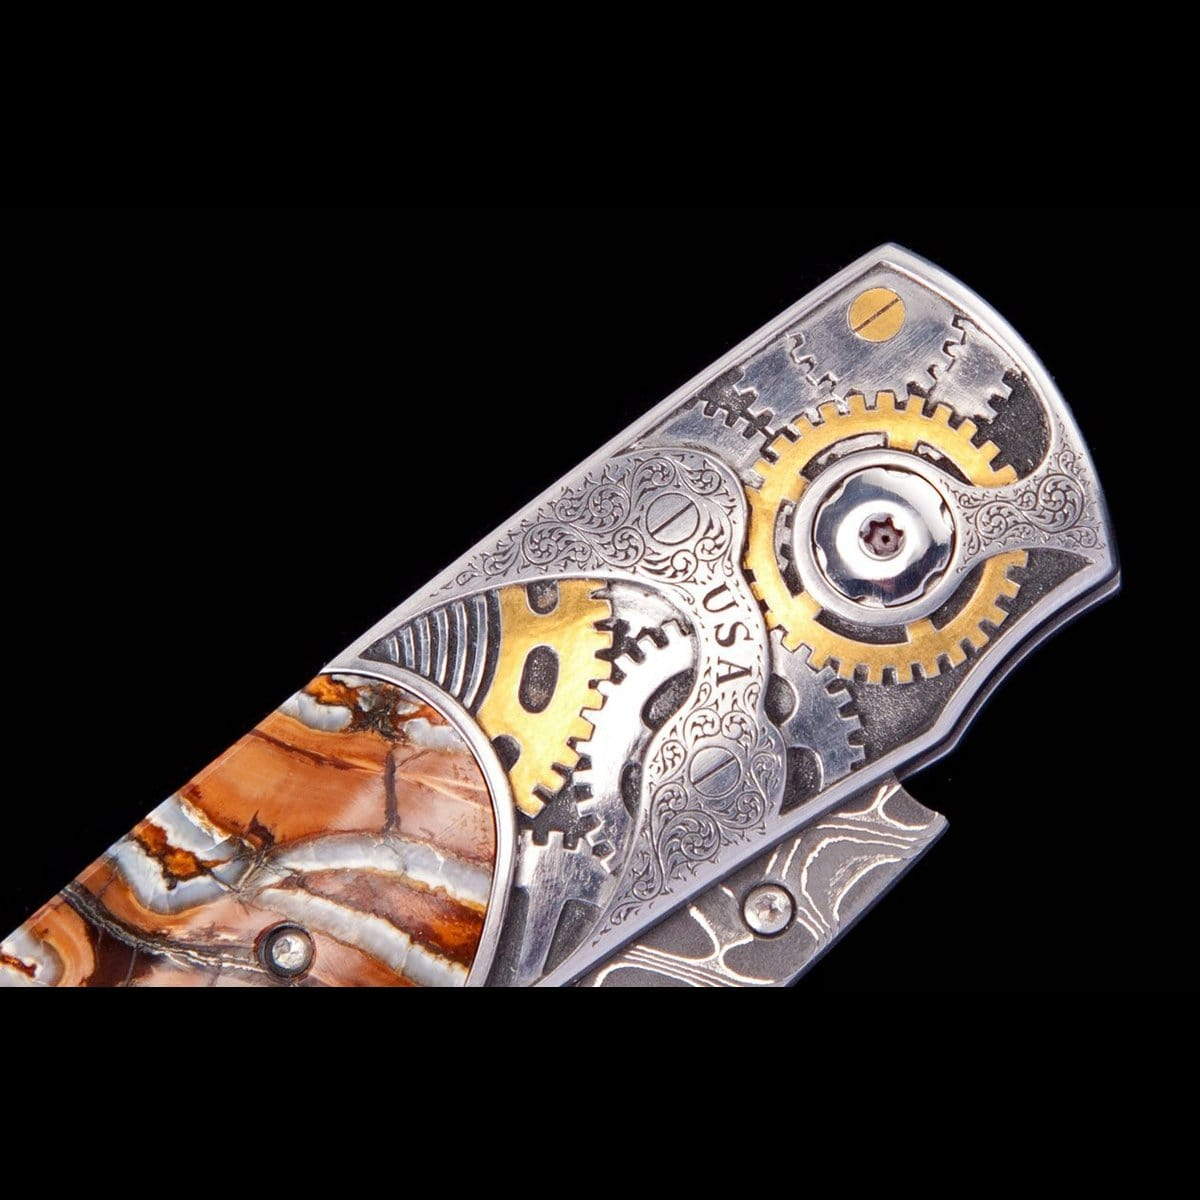 Spearpoint Watchworks Limited Edition Knife - B12 WATCHWORKS-William Henry-Renee Taylor Gallery